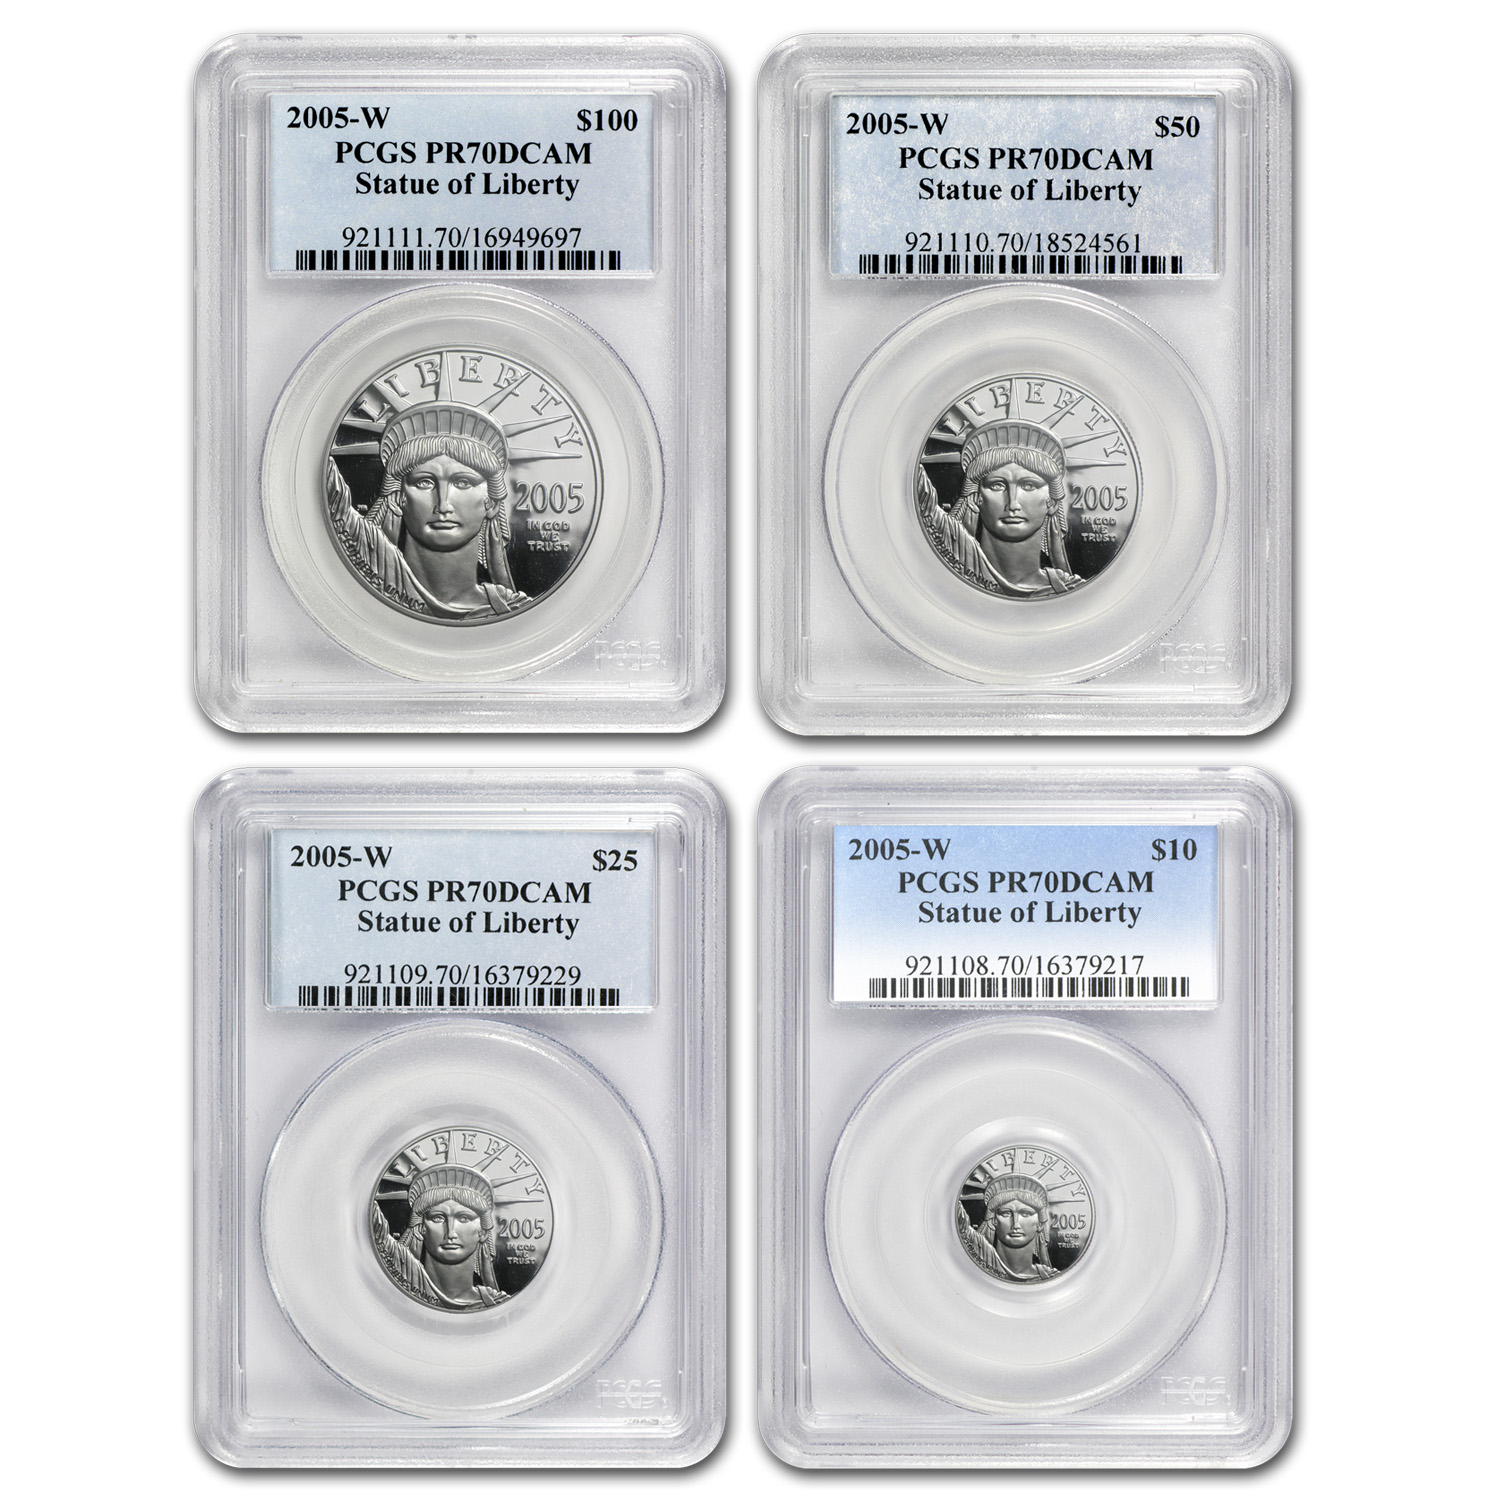 2005-W 4-Coin Proof Platinum American Eagle Set PR-70 PCGS